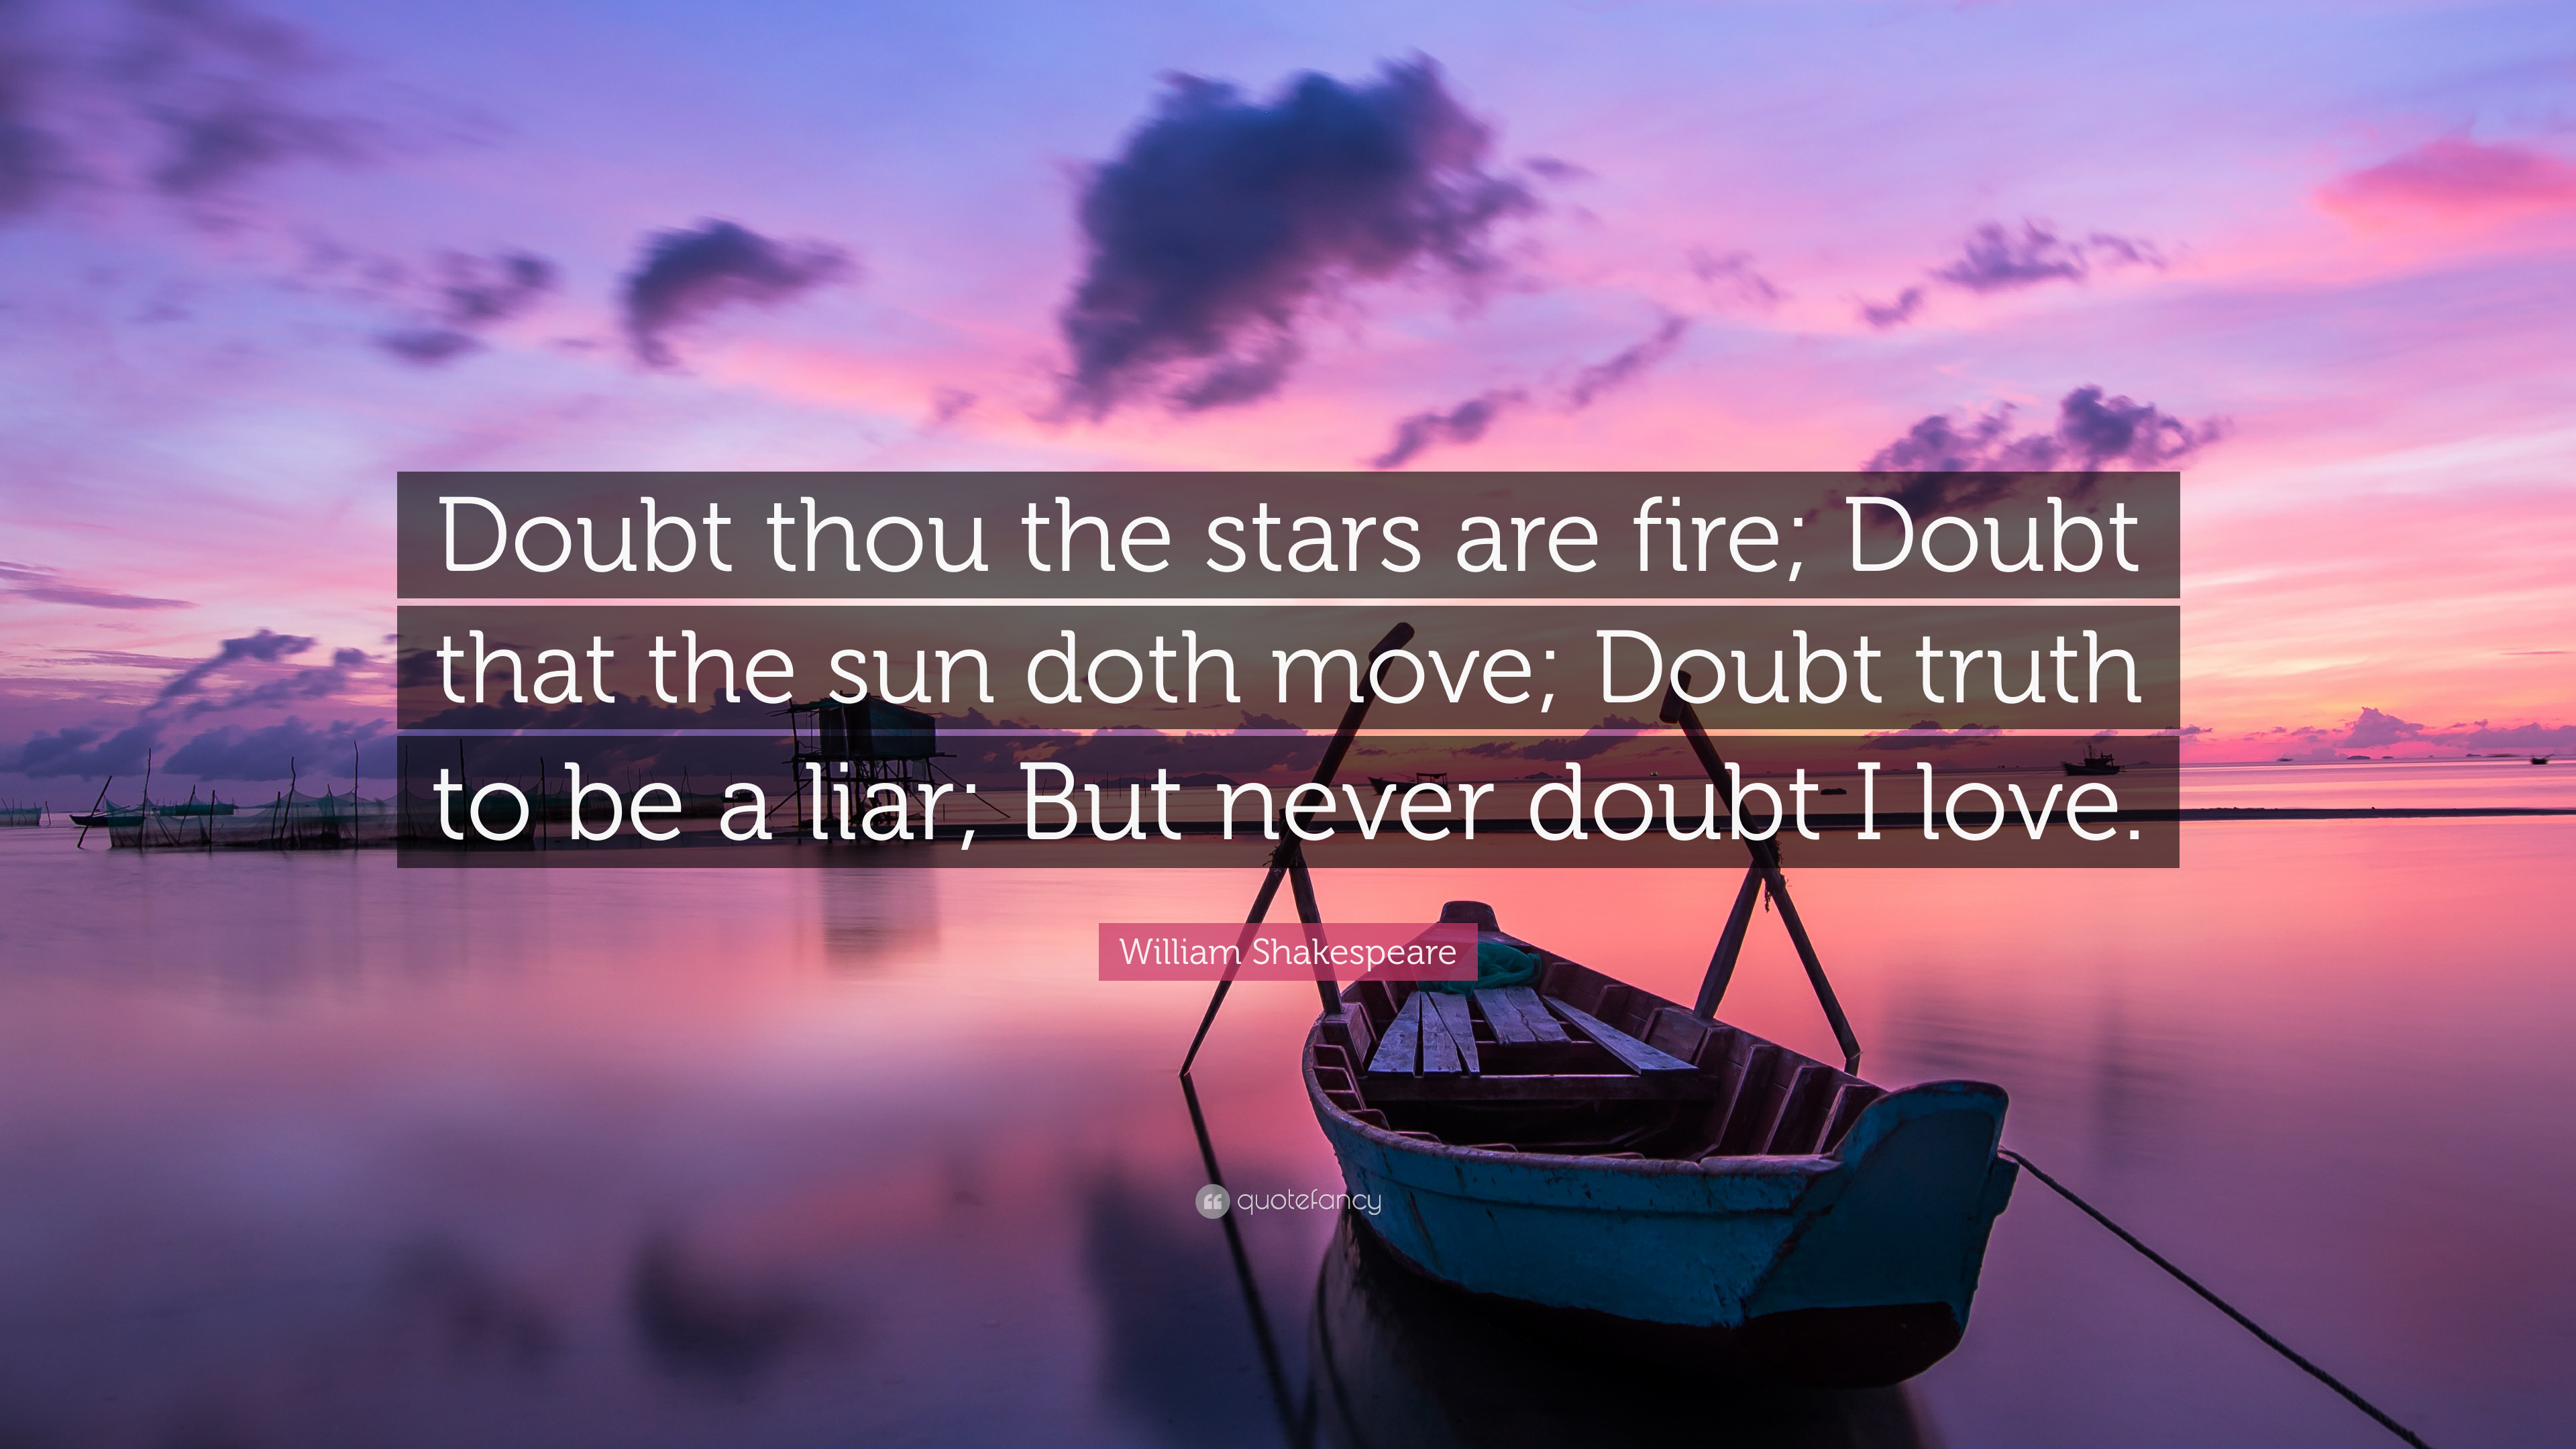 Shakespeare Quotes About Friendship William Shakespeare Quote U201cDoubt Thou  The Stars Are Fire Doubt